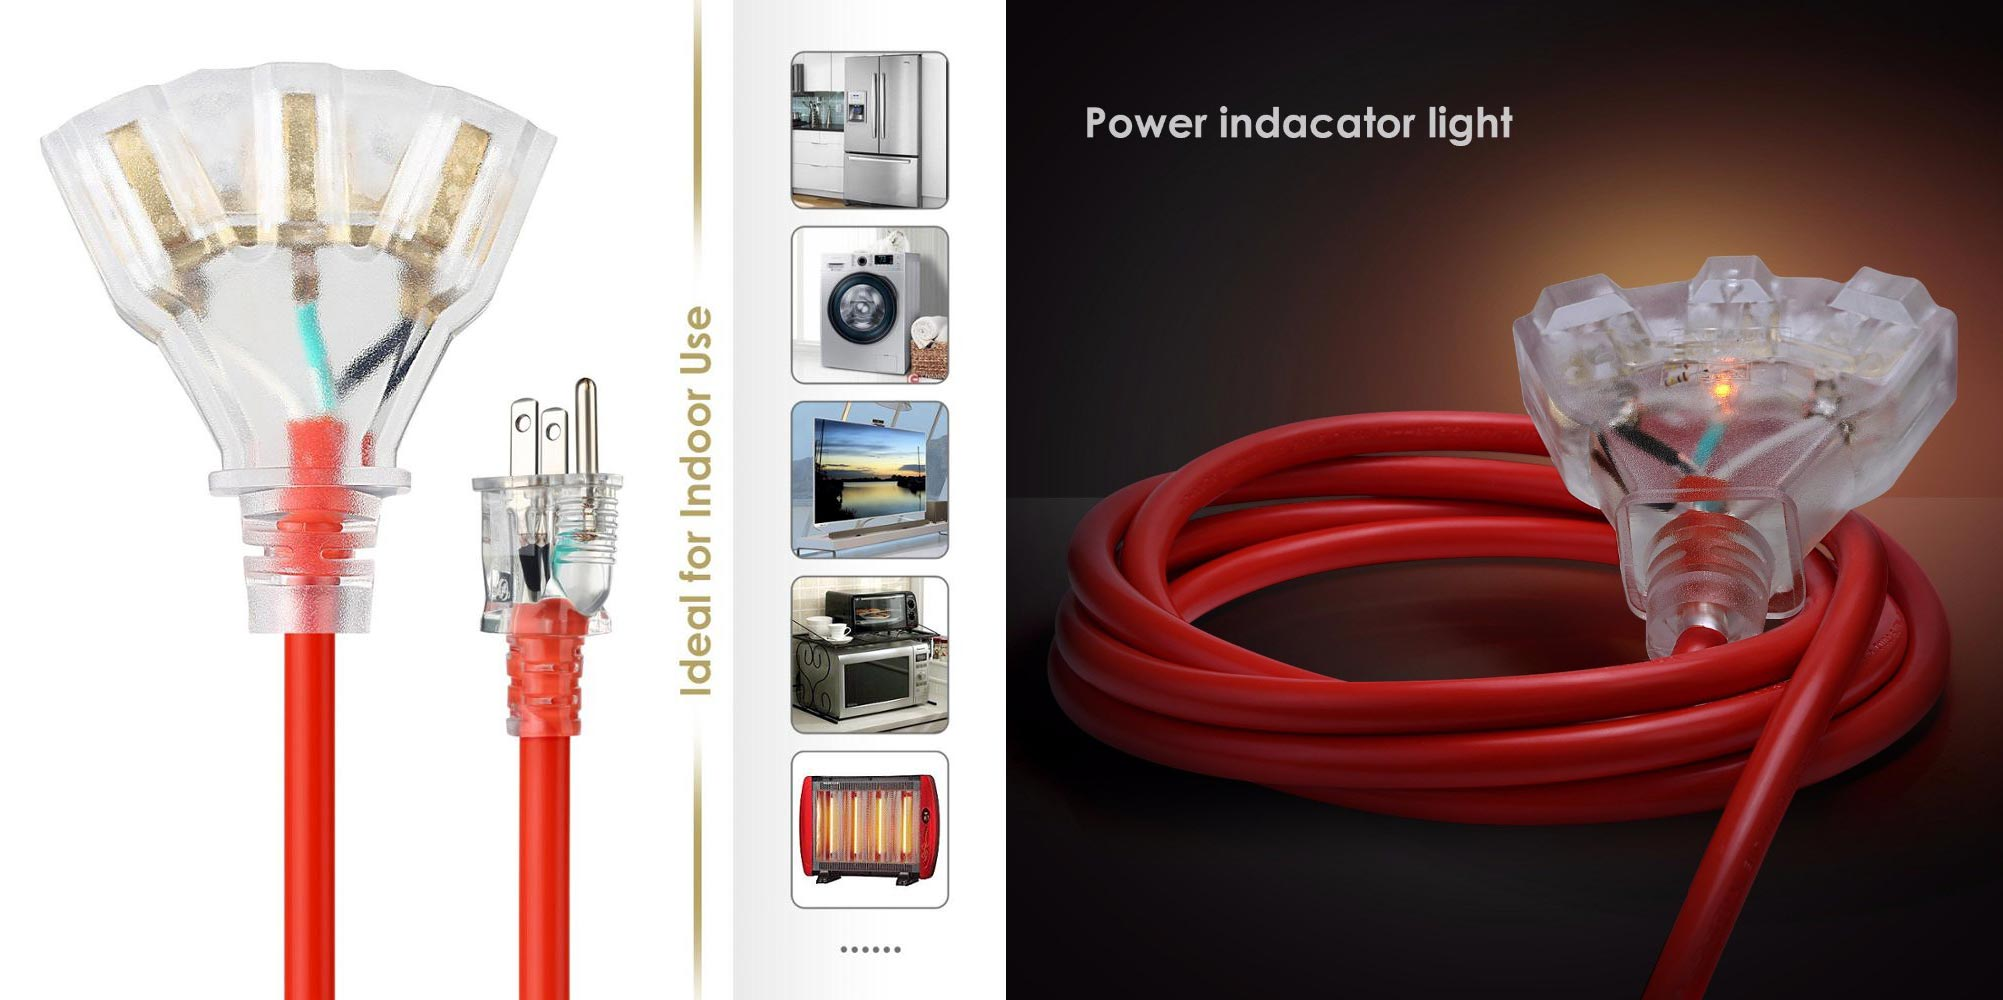 US extension cord with light end